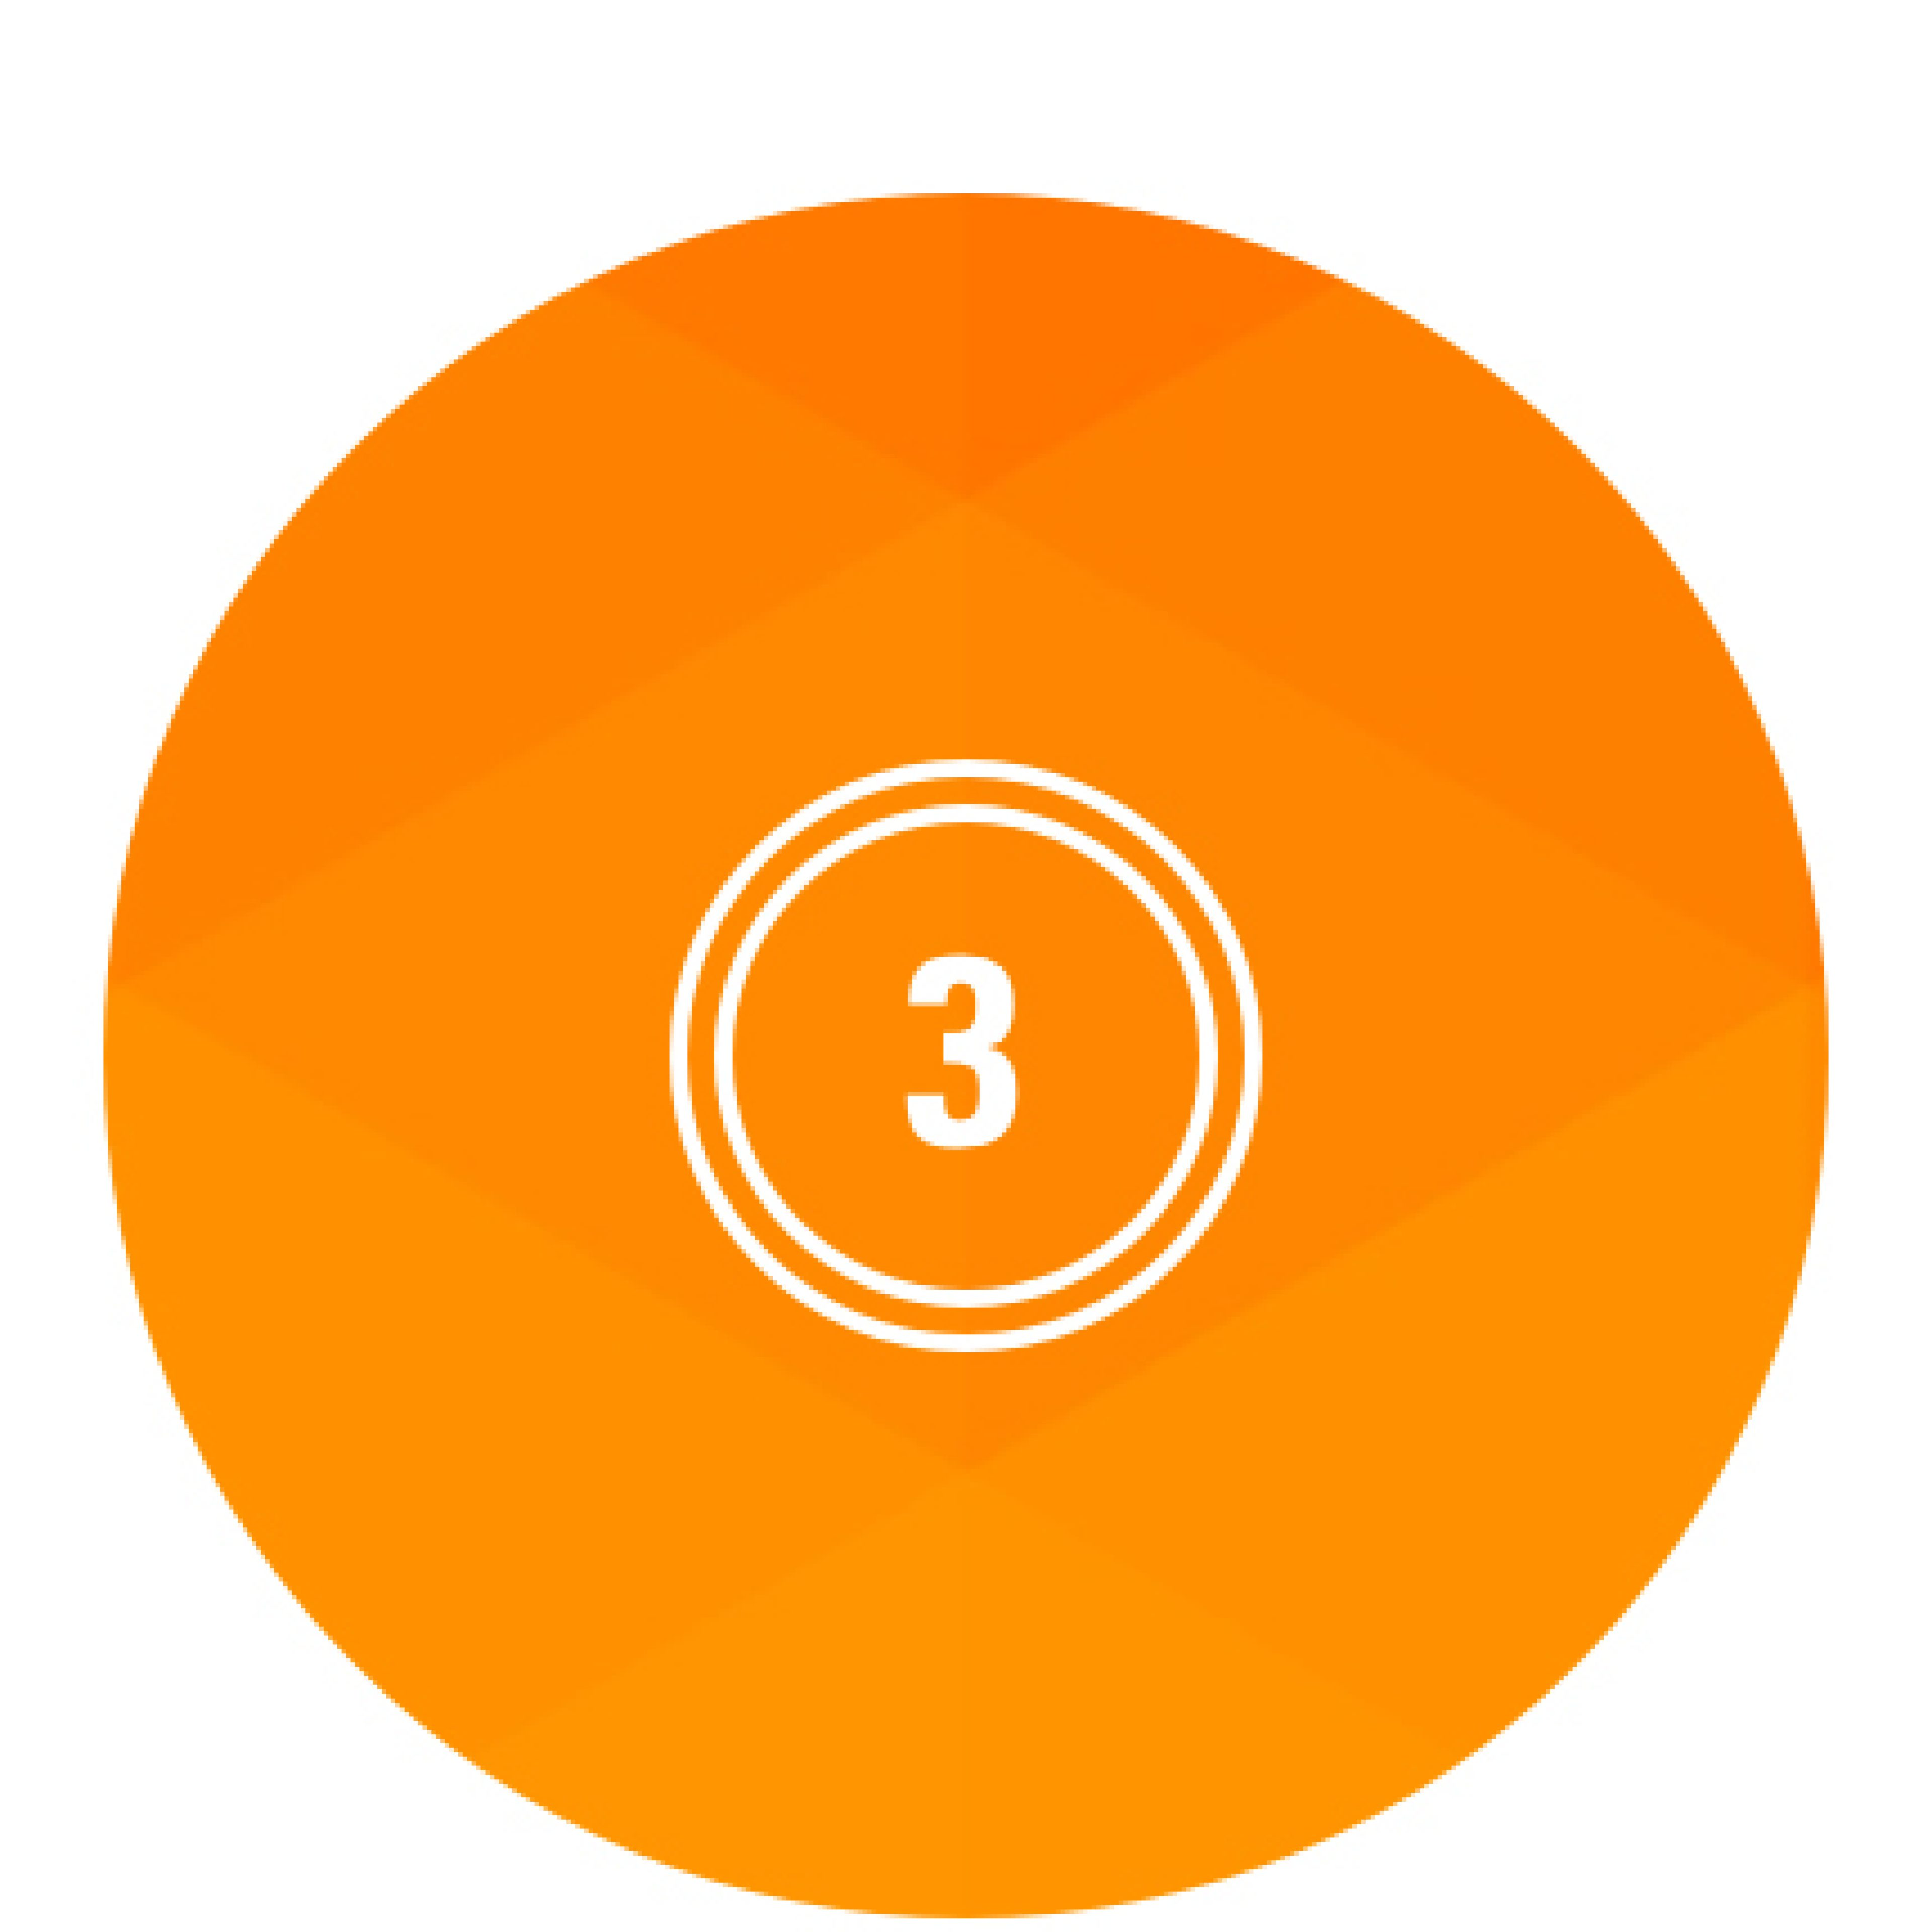 Orange circle with the number 3 in white